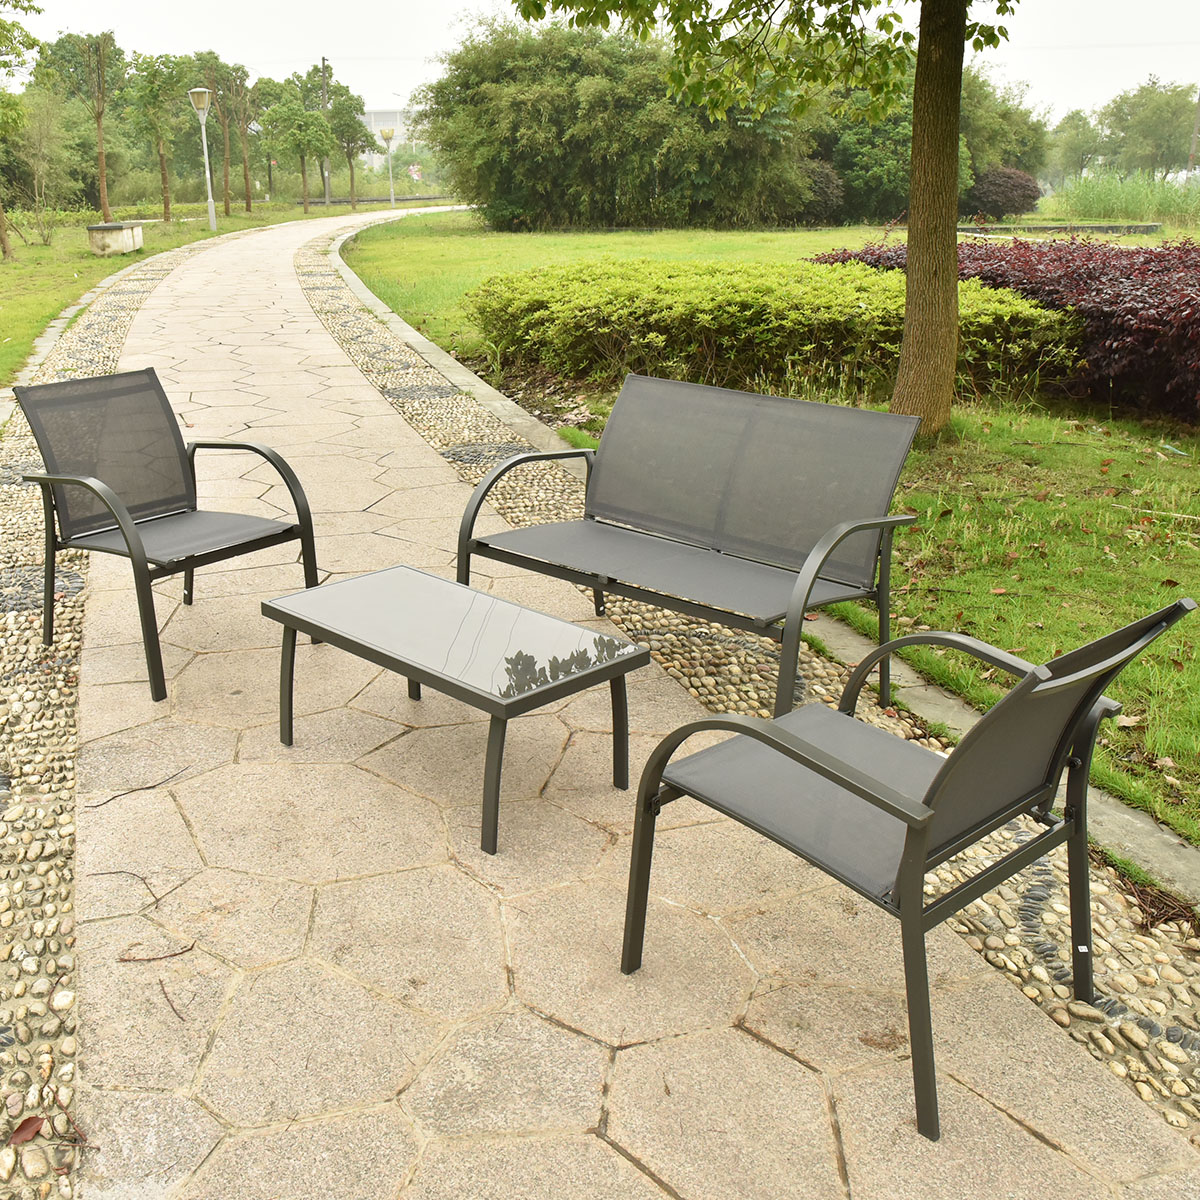 outdoor patio furniture sets costway 4pcs patio garden furniture set steel frame outdoor lawn sofa chairs WIVQPZM